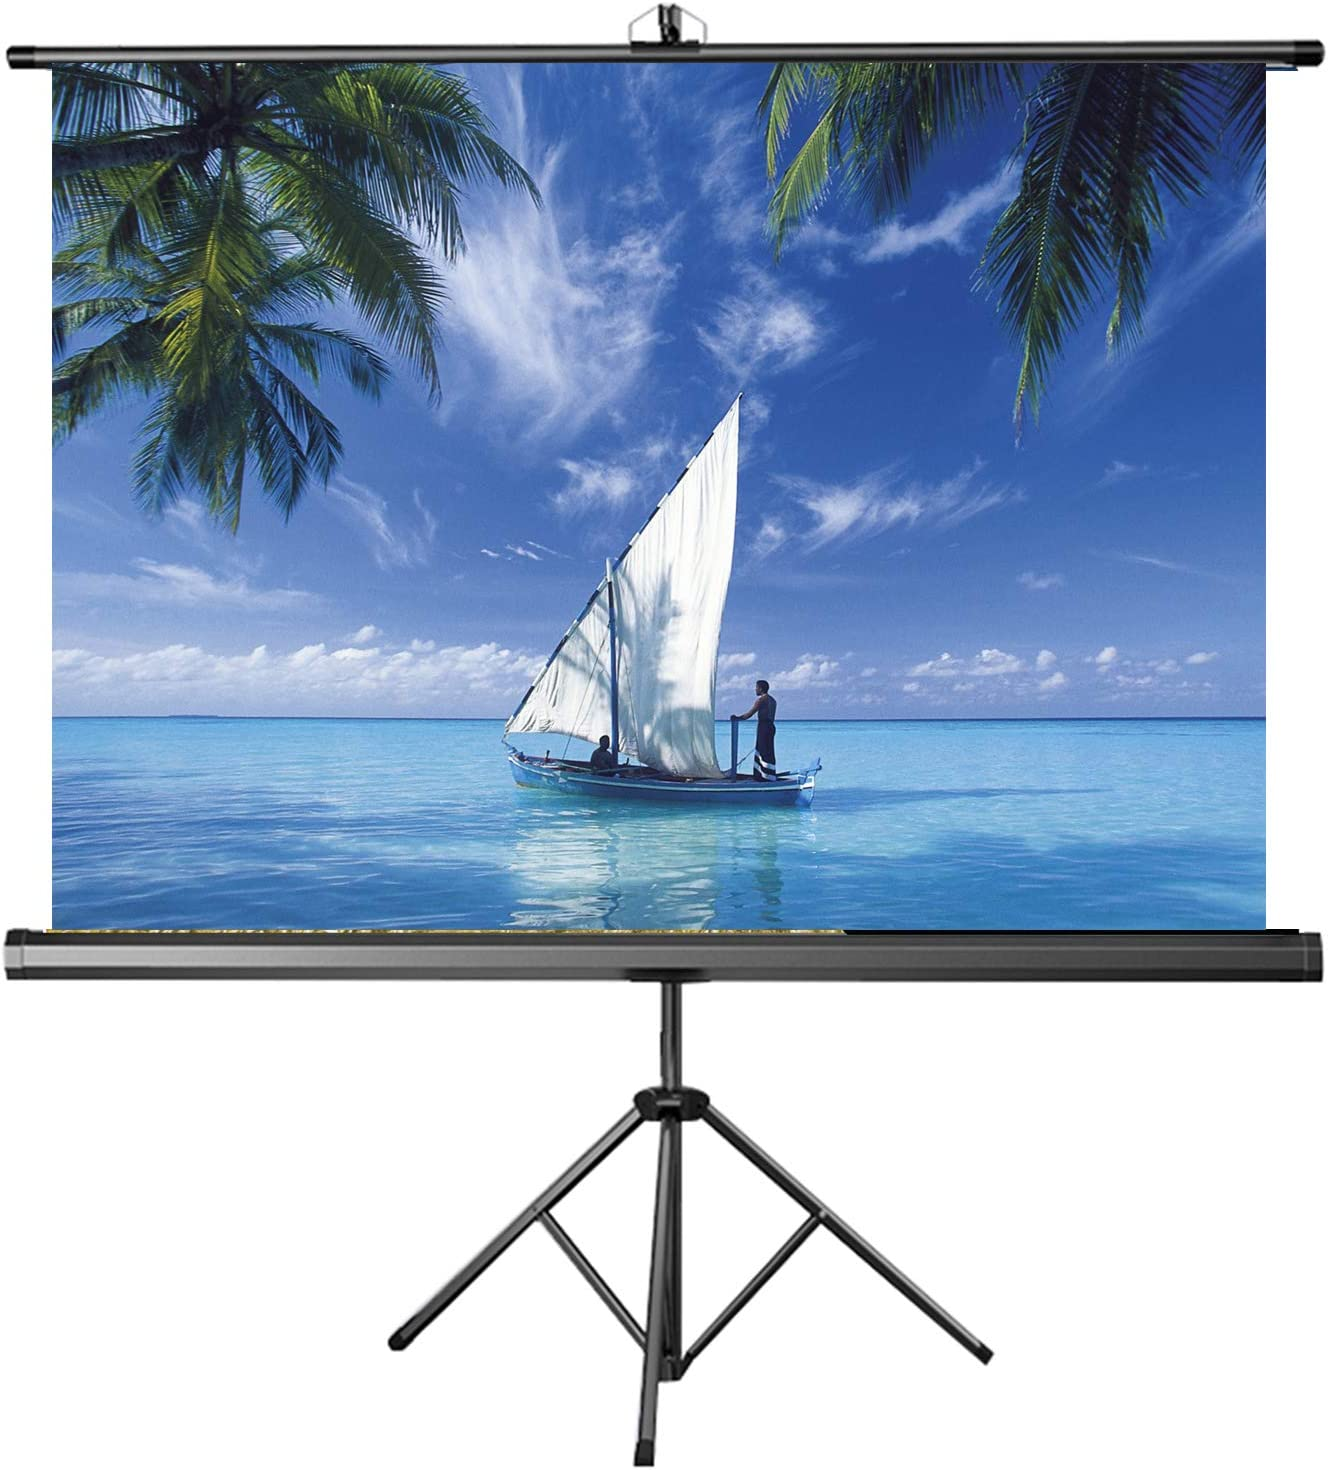 ALDS 60 inch Projection Screen 4:3/16:10/16:9 HD No Wrinkles Tripod Stand Projector Screen for Theater Cinema Meet Fast Assembly Design